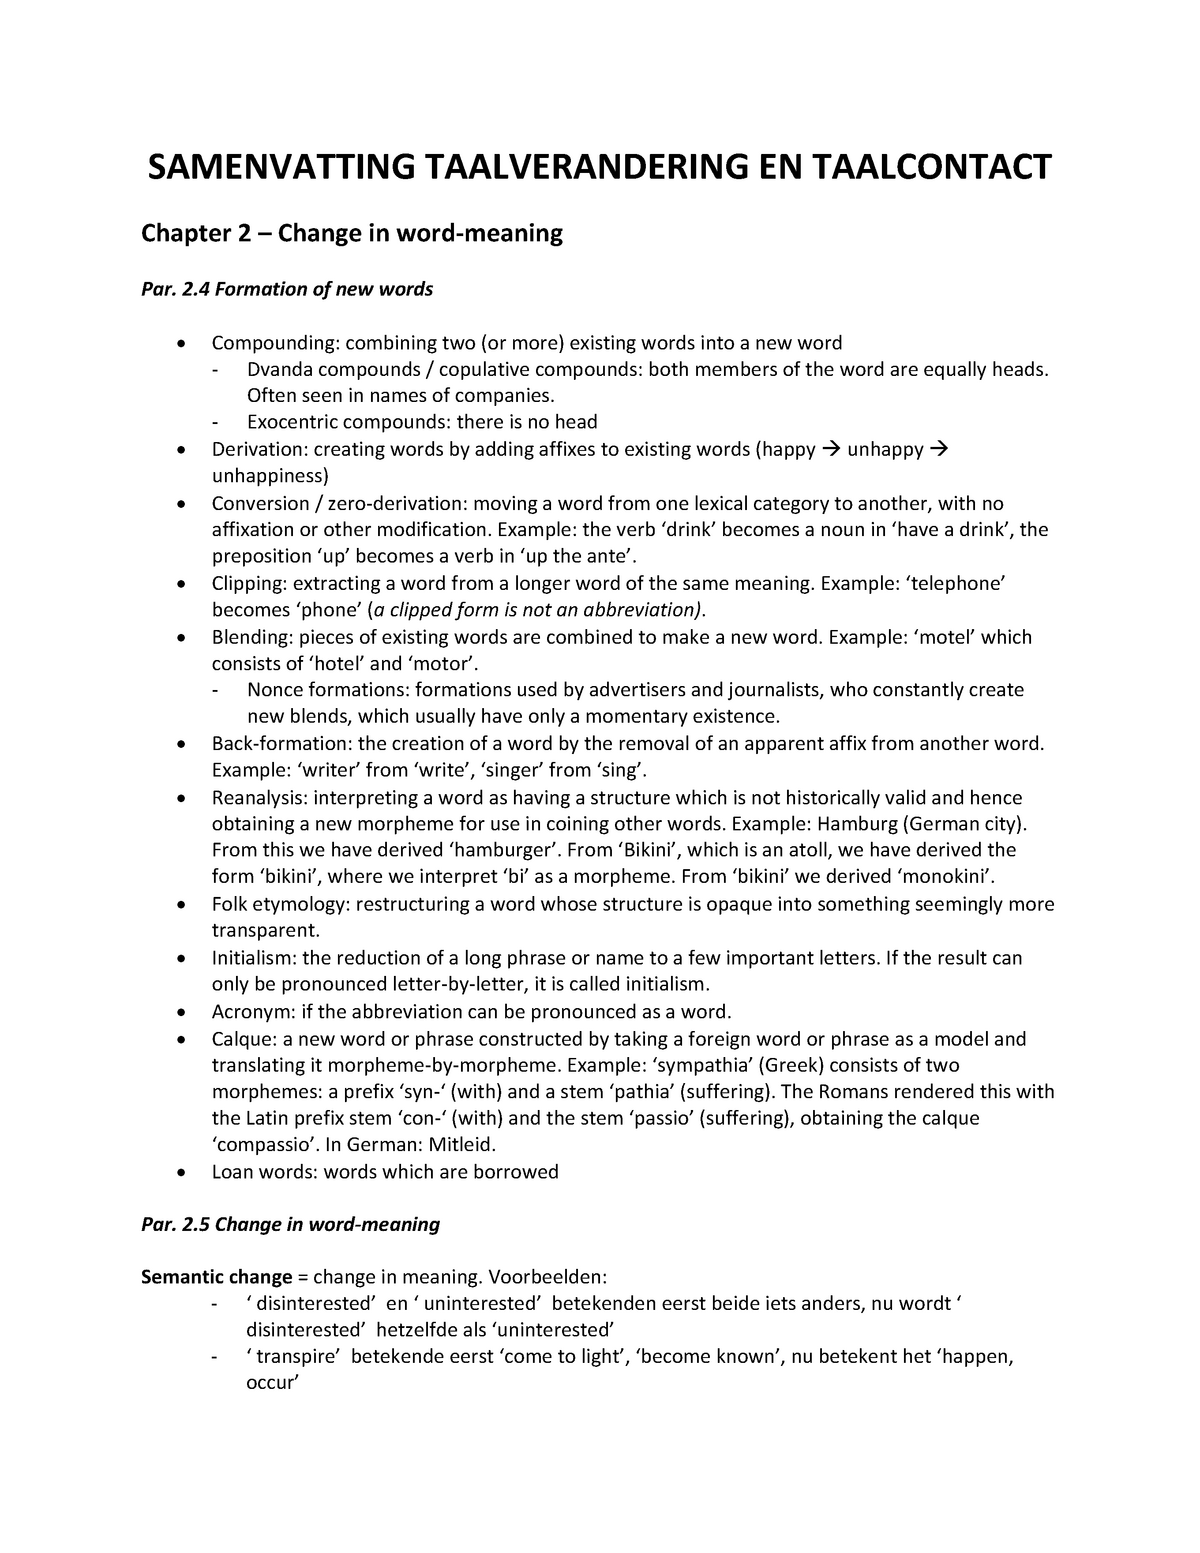 Samenvatting Trask's Historical Linguistics 22 May 2014 - StudeerSnel nl